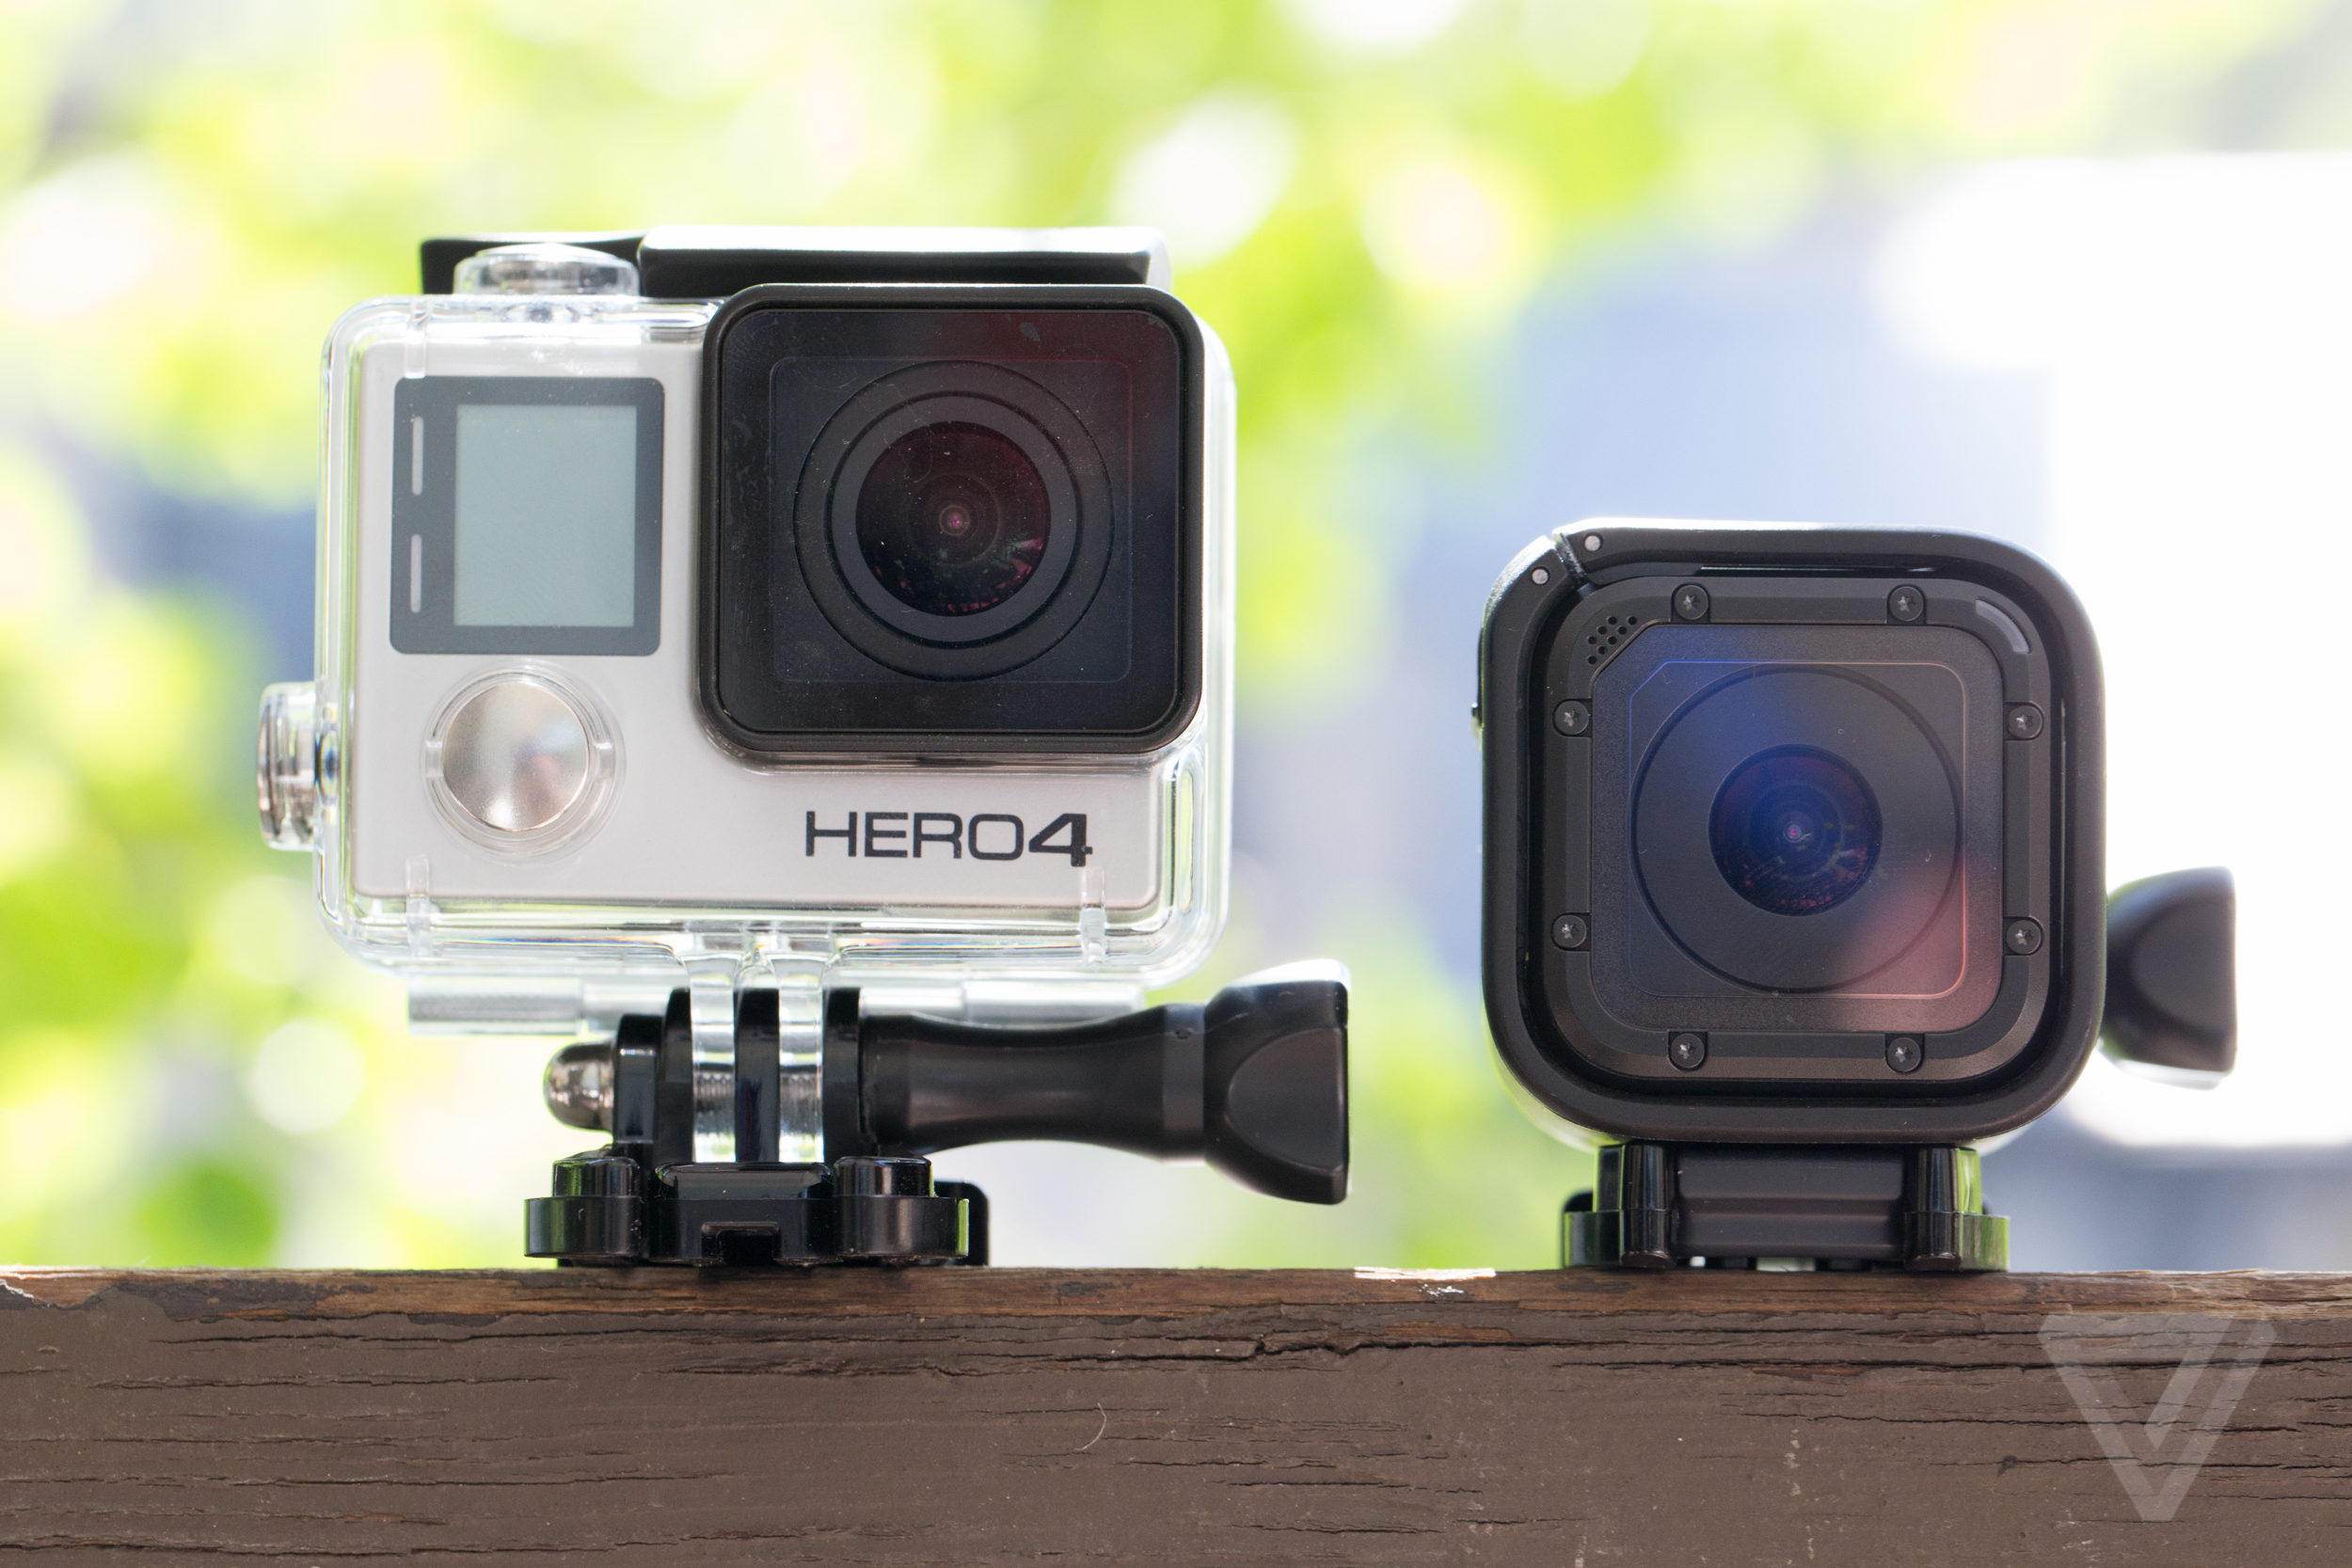 https://s.instela.com/m/gopro-hero4-session--i725146.jpg